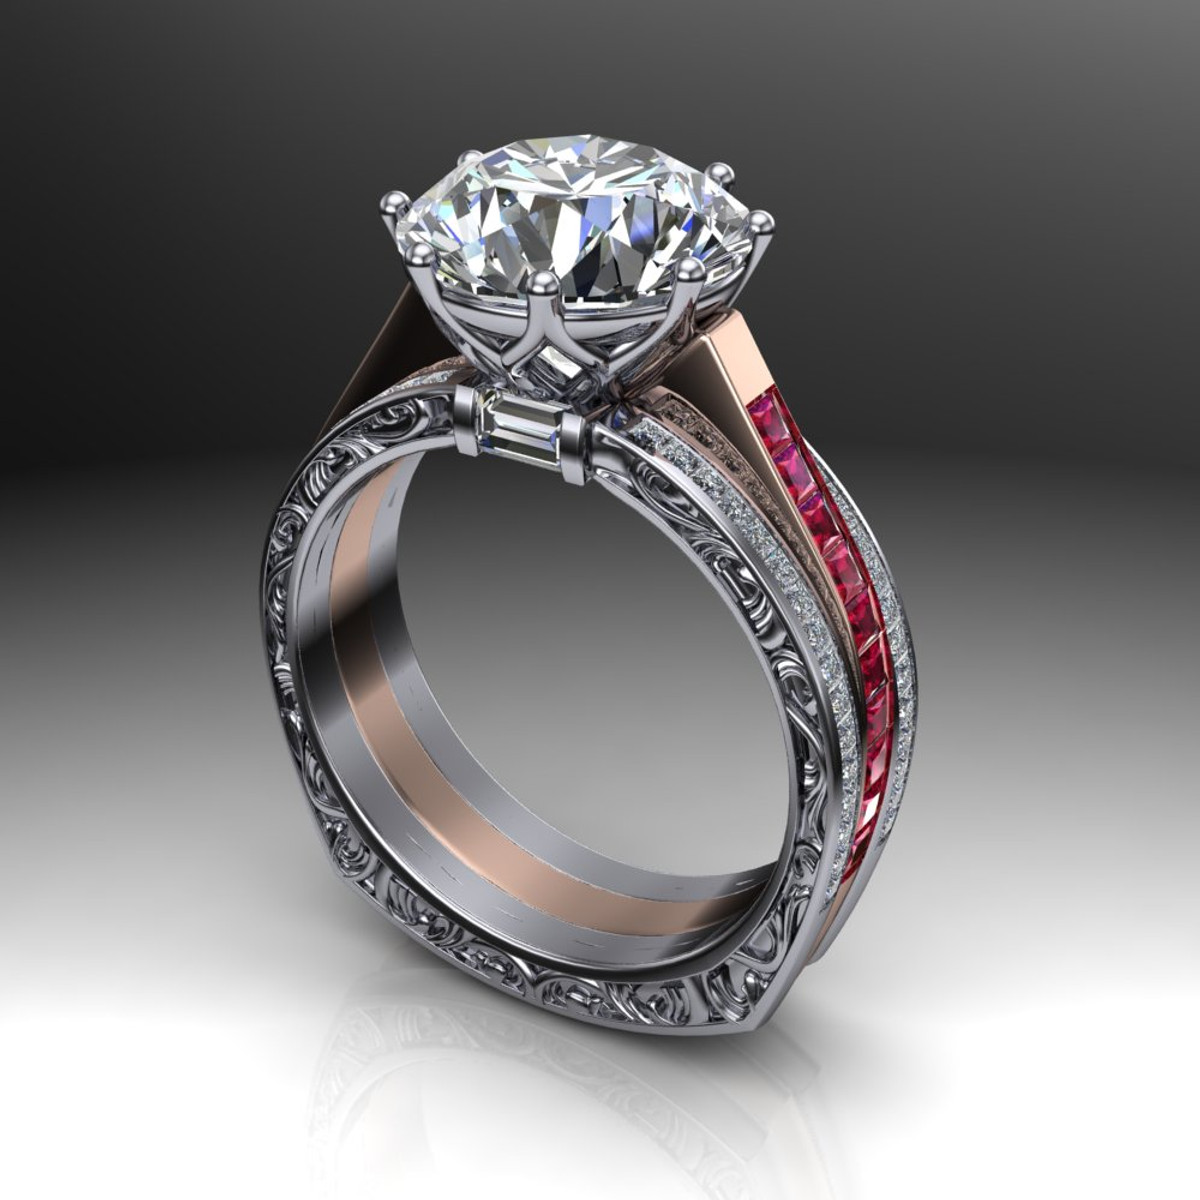 diamond finger carats please of rings it size and topic wedding pictures proud too small carat